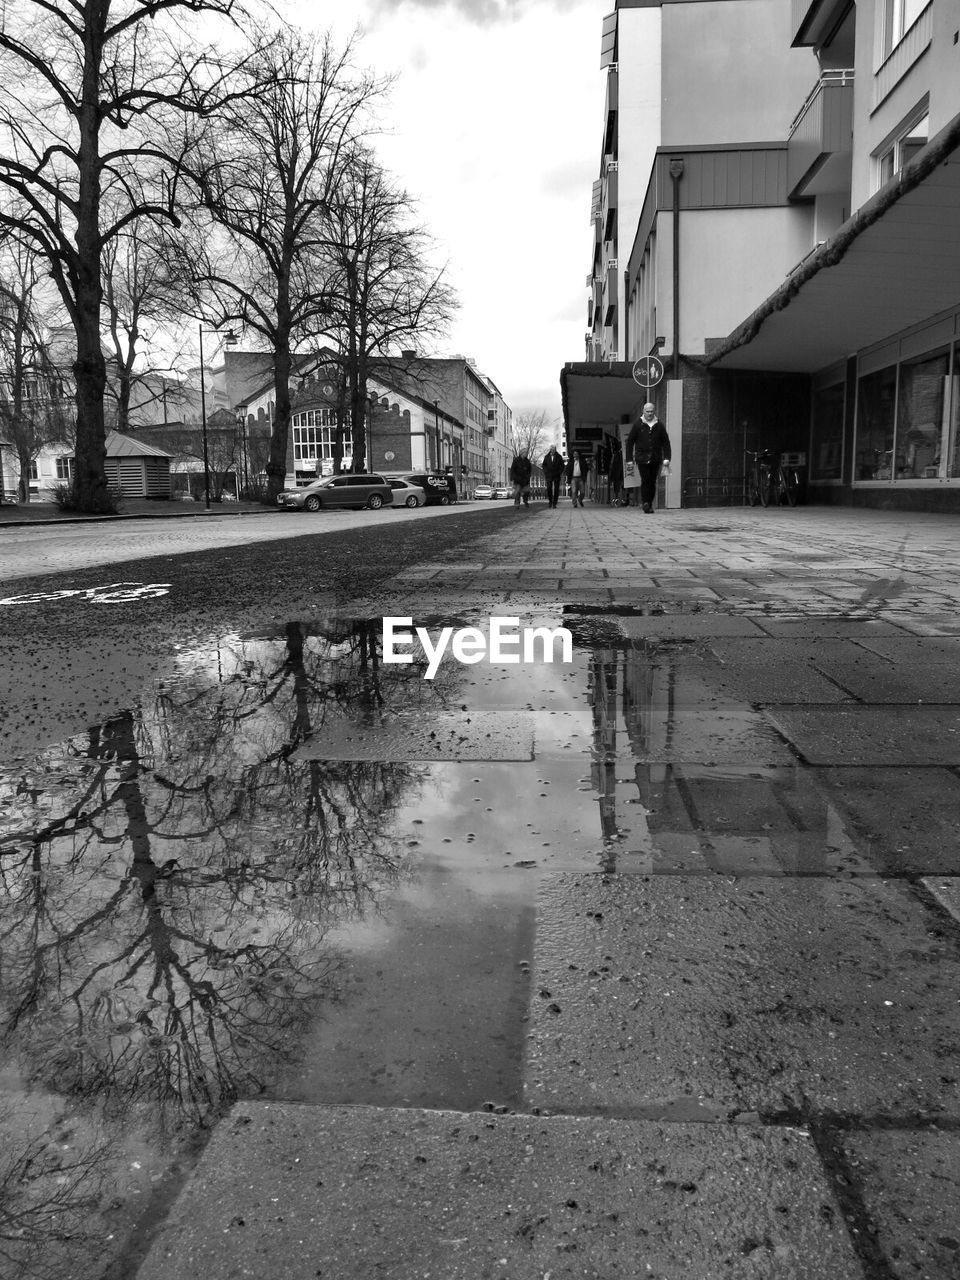 built structure, building exterior, architecture, bare tree, street, tree, outdoors, wet, puddle, day, sky, water, road, city, no people